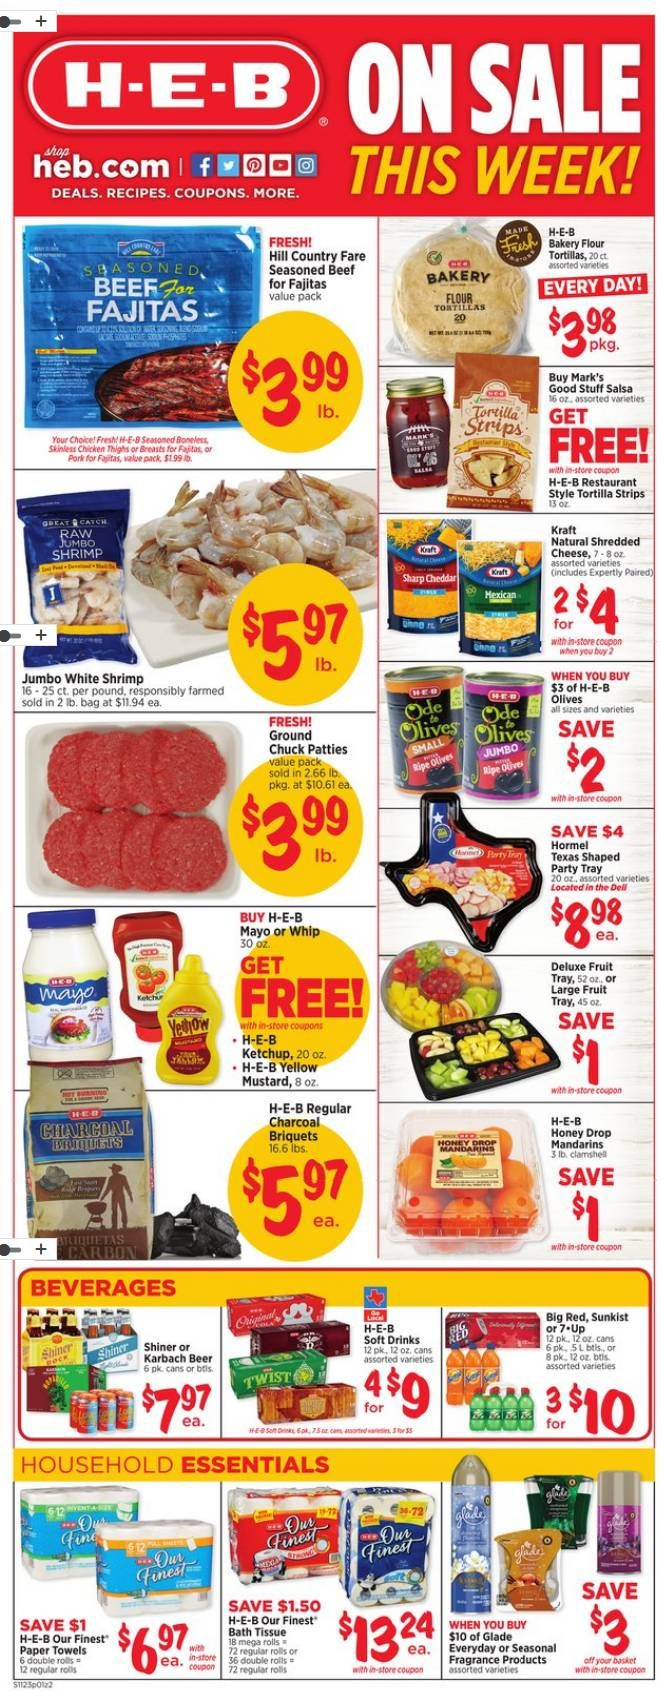 Search Current HEB Weekly Ad Flyer Here Valid November 23 27 2018 Find Great Prices Brands Services At H E B Try Curbside Grocery Pickup